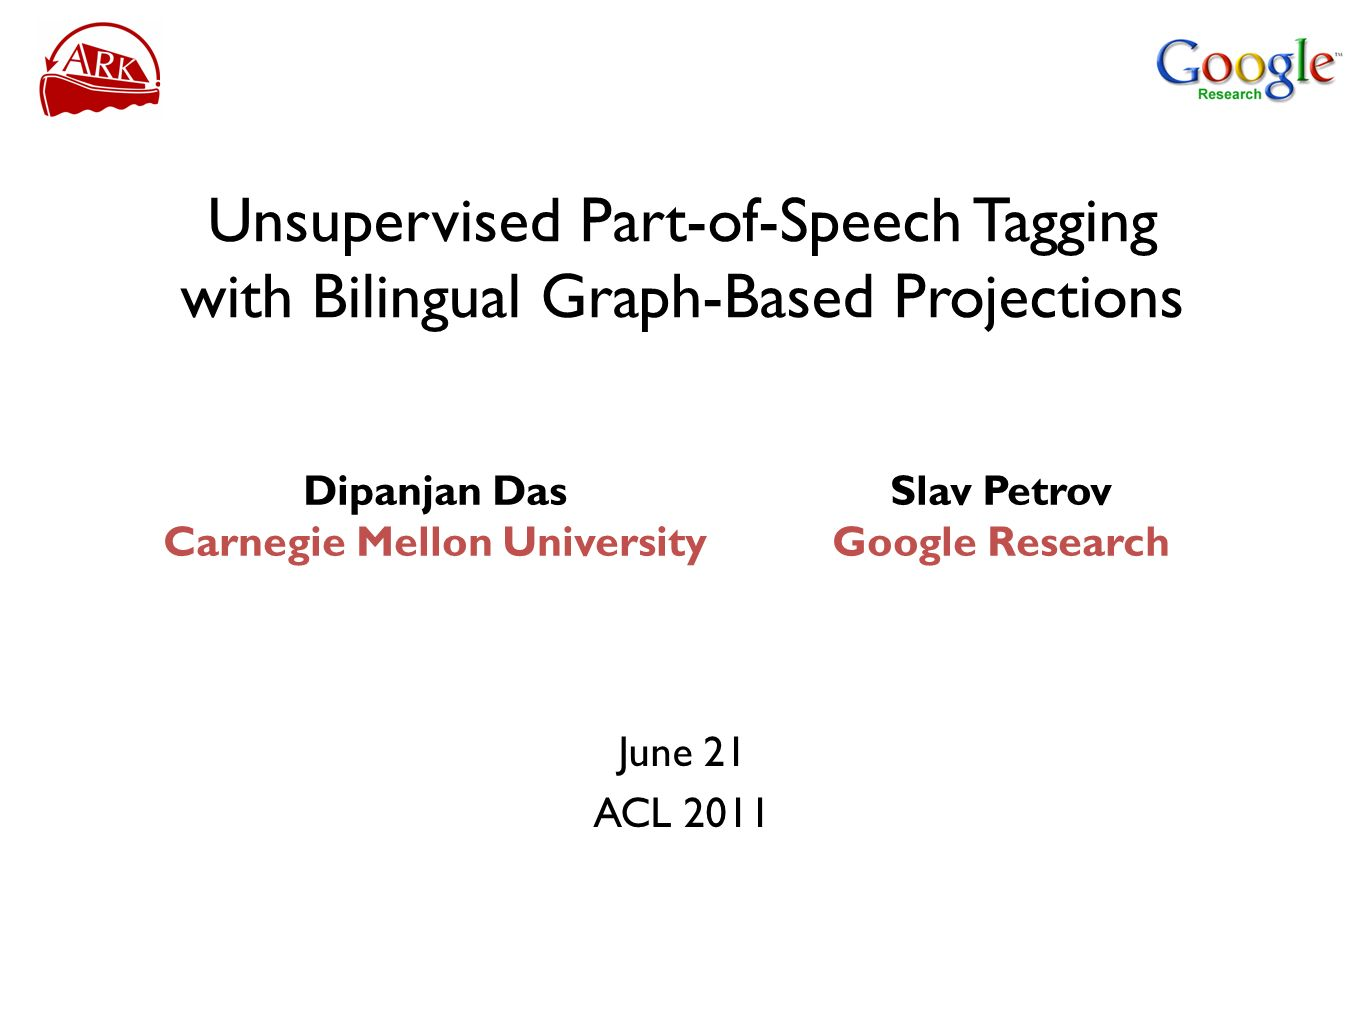 Unsupervised Part-of-Speech Tagging with Bilingual Graph-Based Projections June 21 ACL 2011 Slav Petrov Google Research Dipanjan Das Carnegie Mellon U